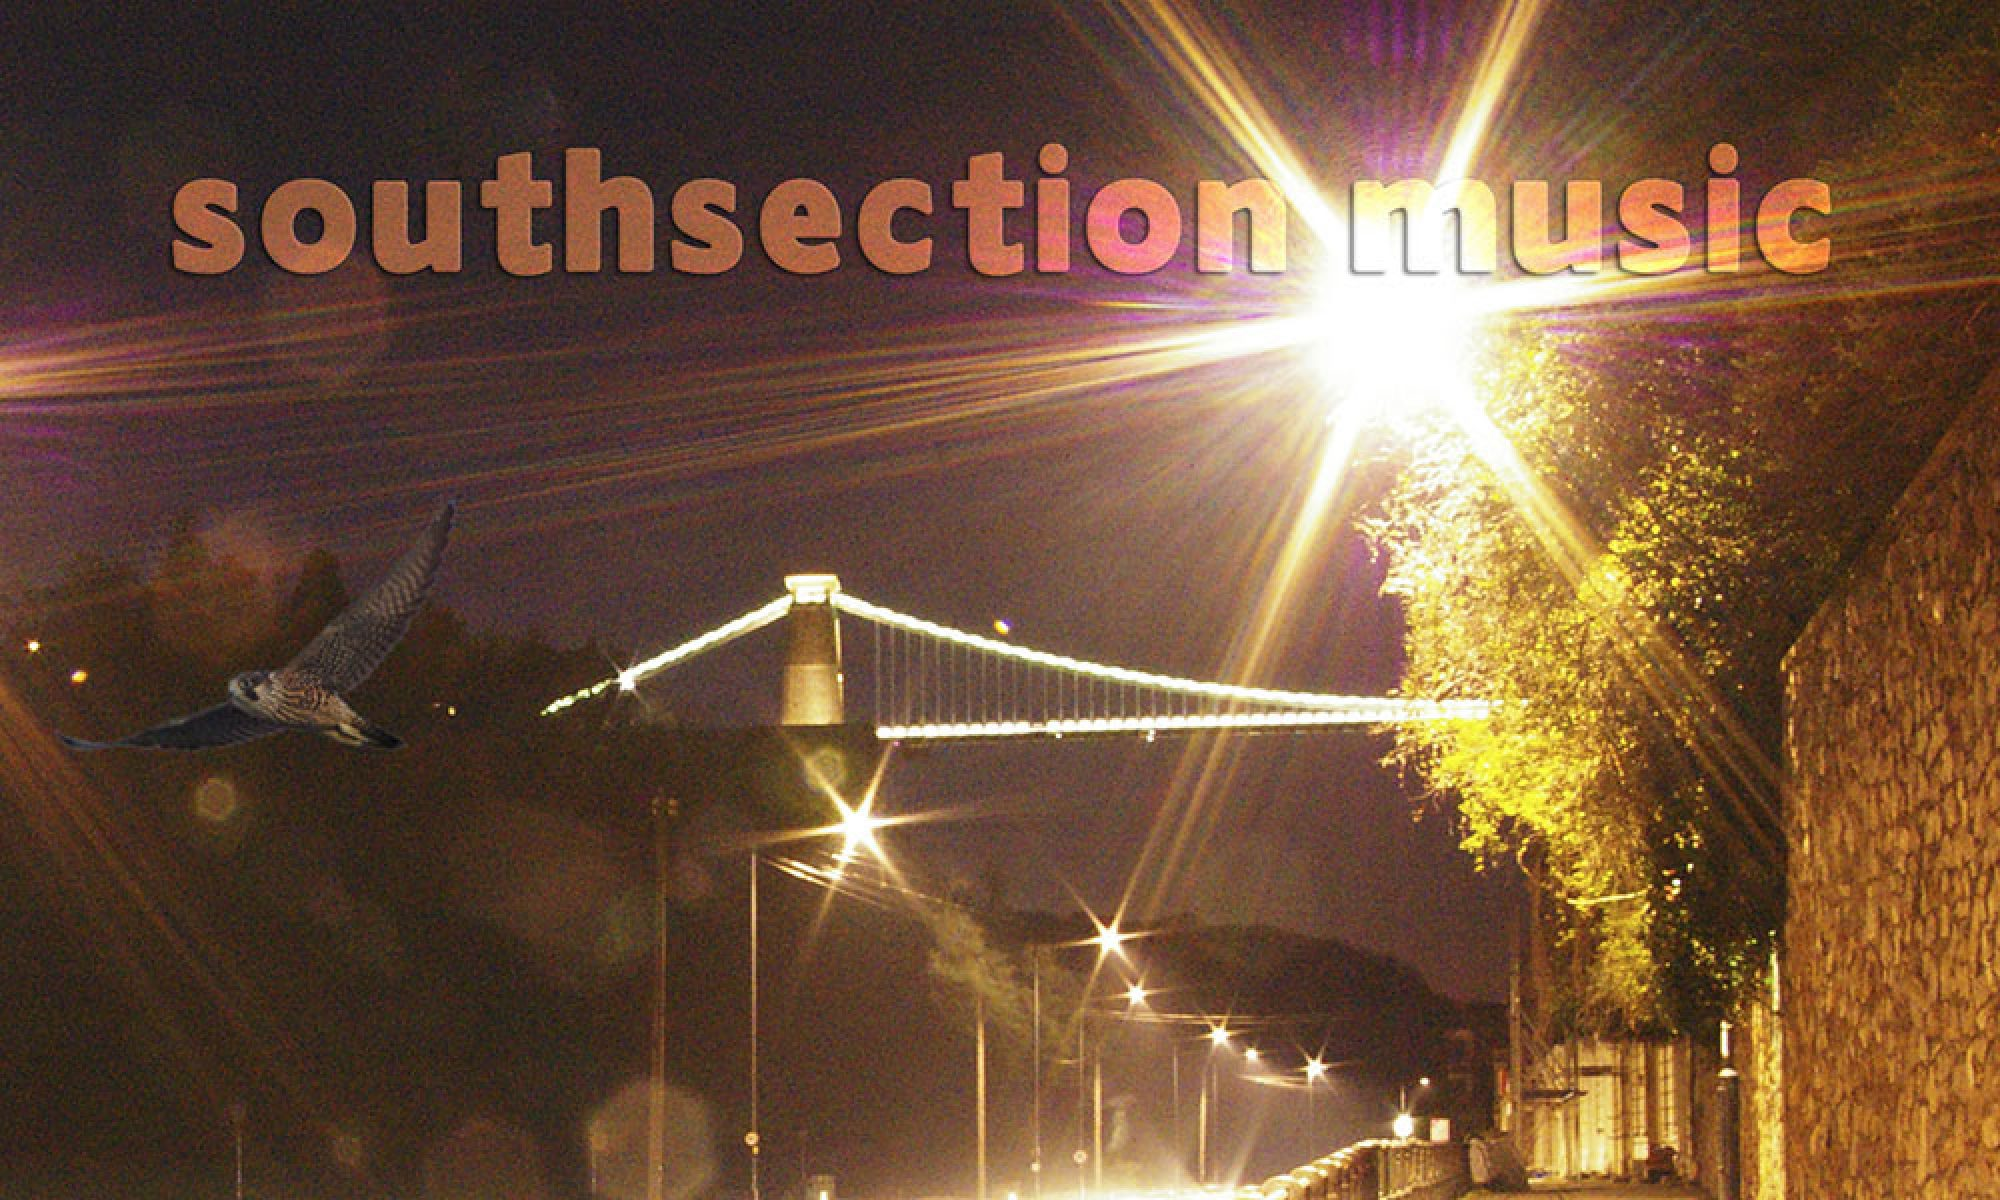 Southsection Music